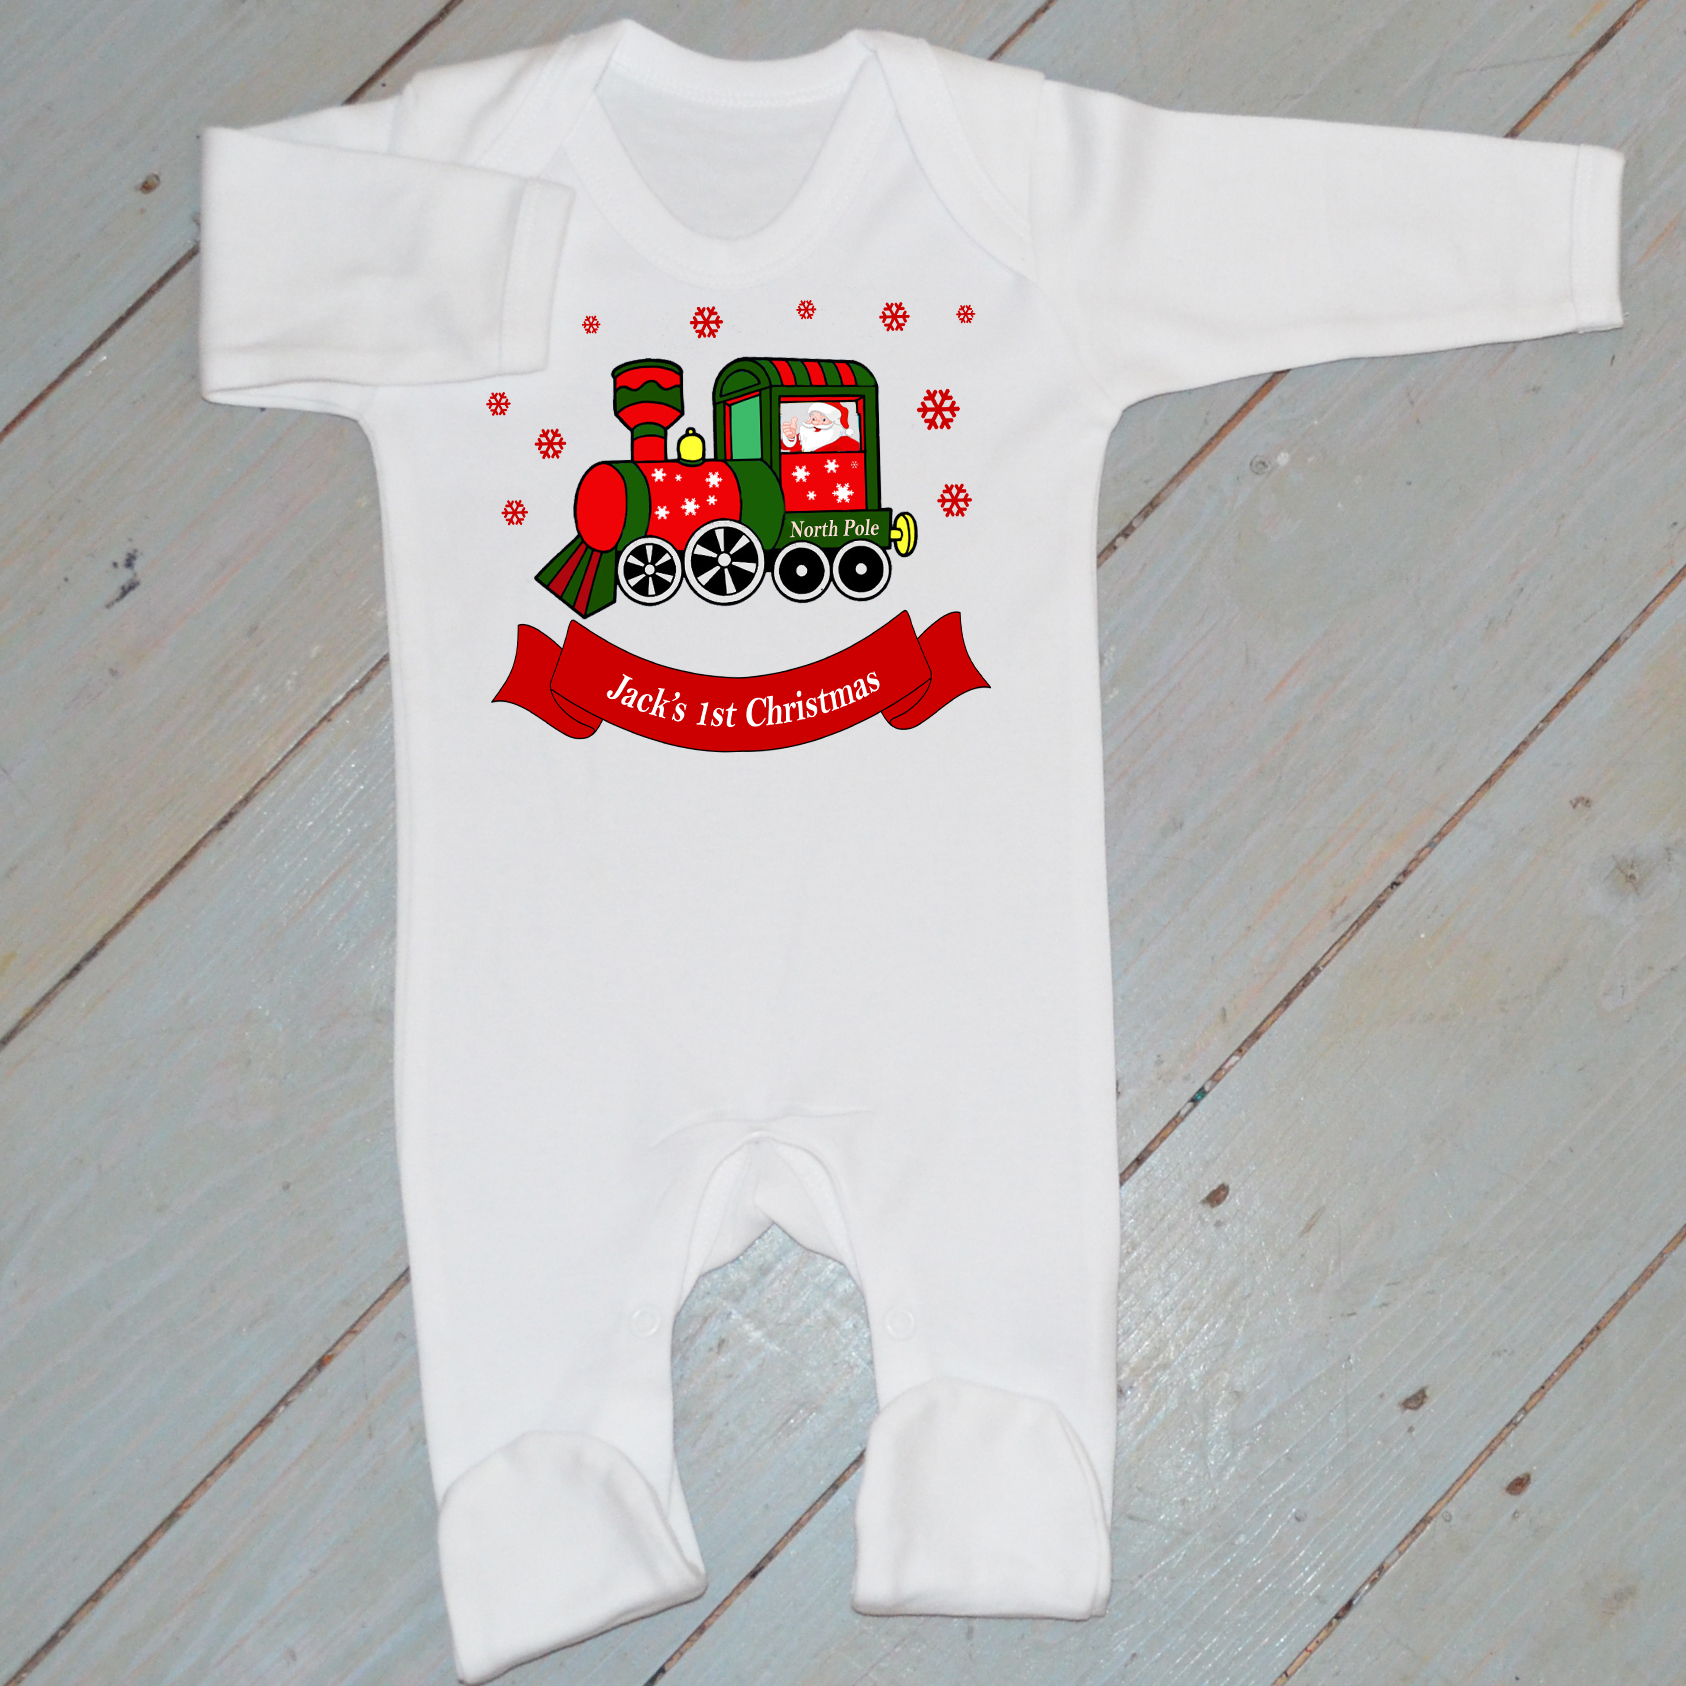 82d8823be602 Personalised Christmas Baby Grow- Santa Train (White)